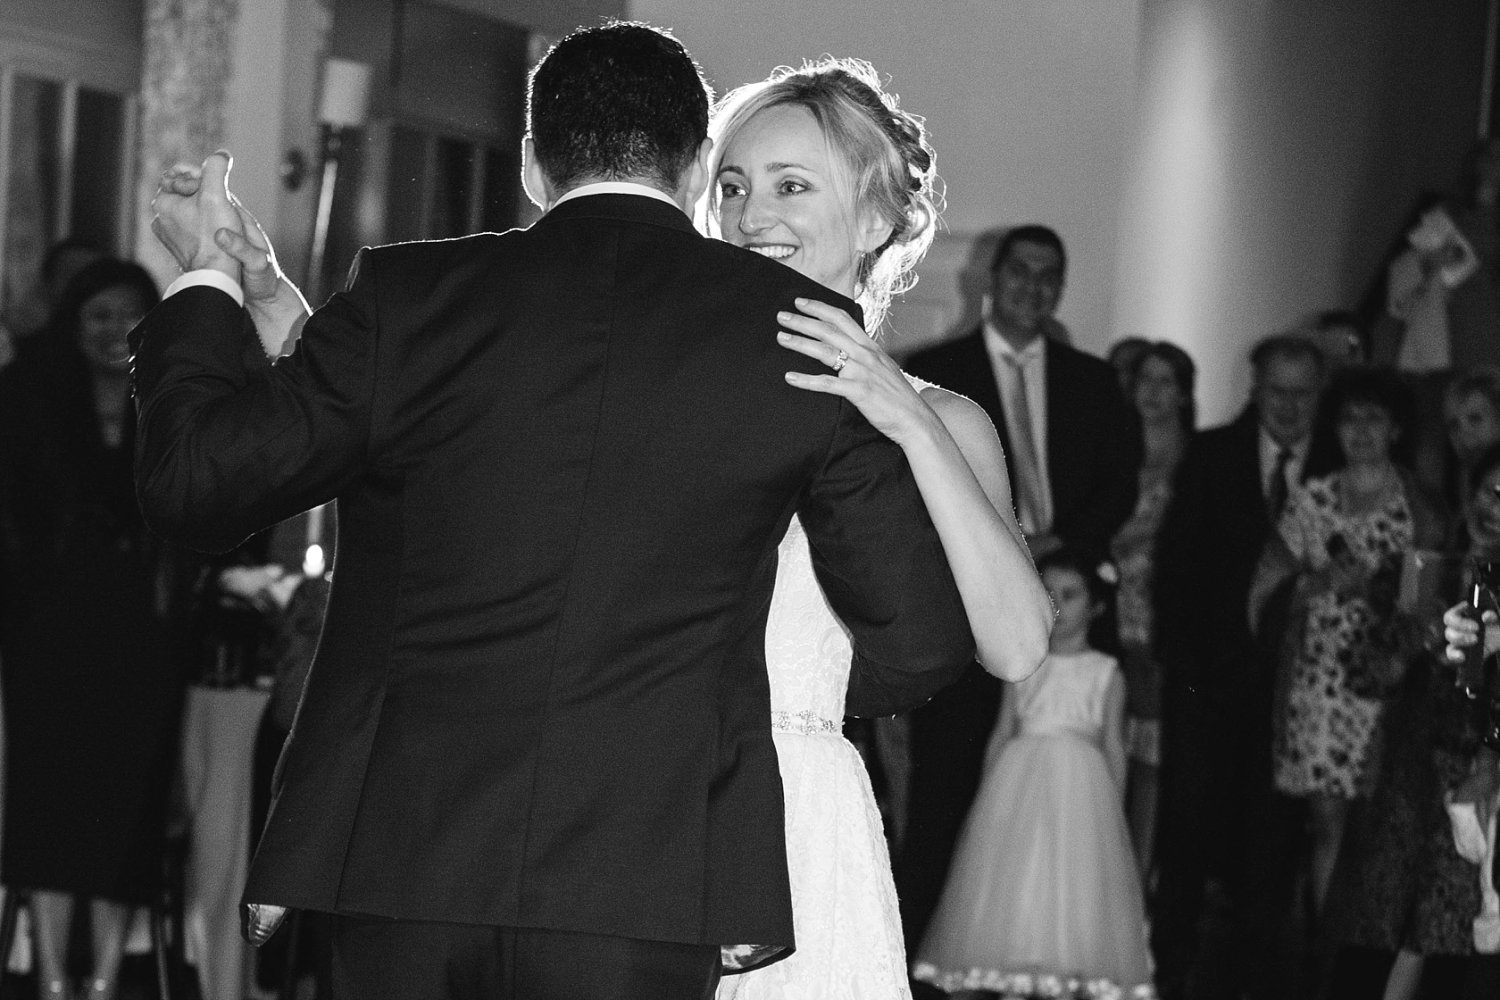 First dance photo at Carlowrie Castle Wedding in Scotland